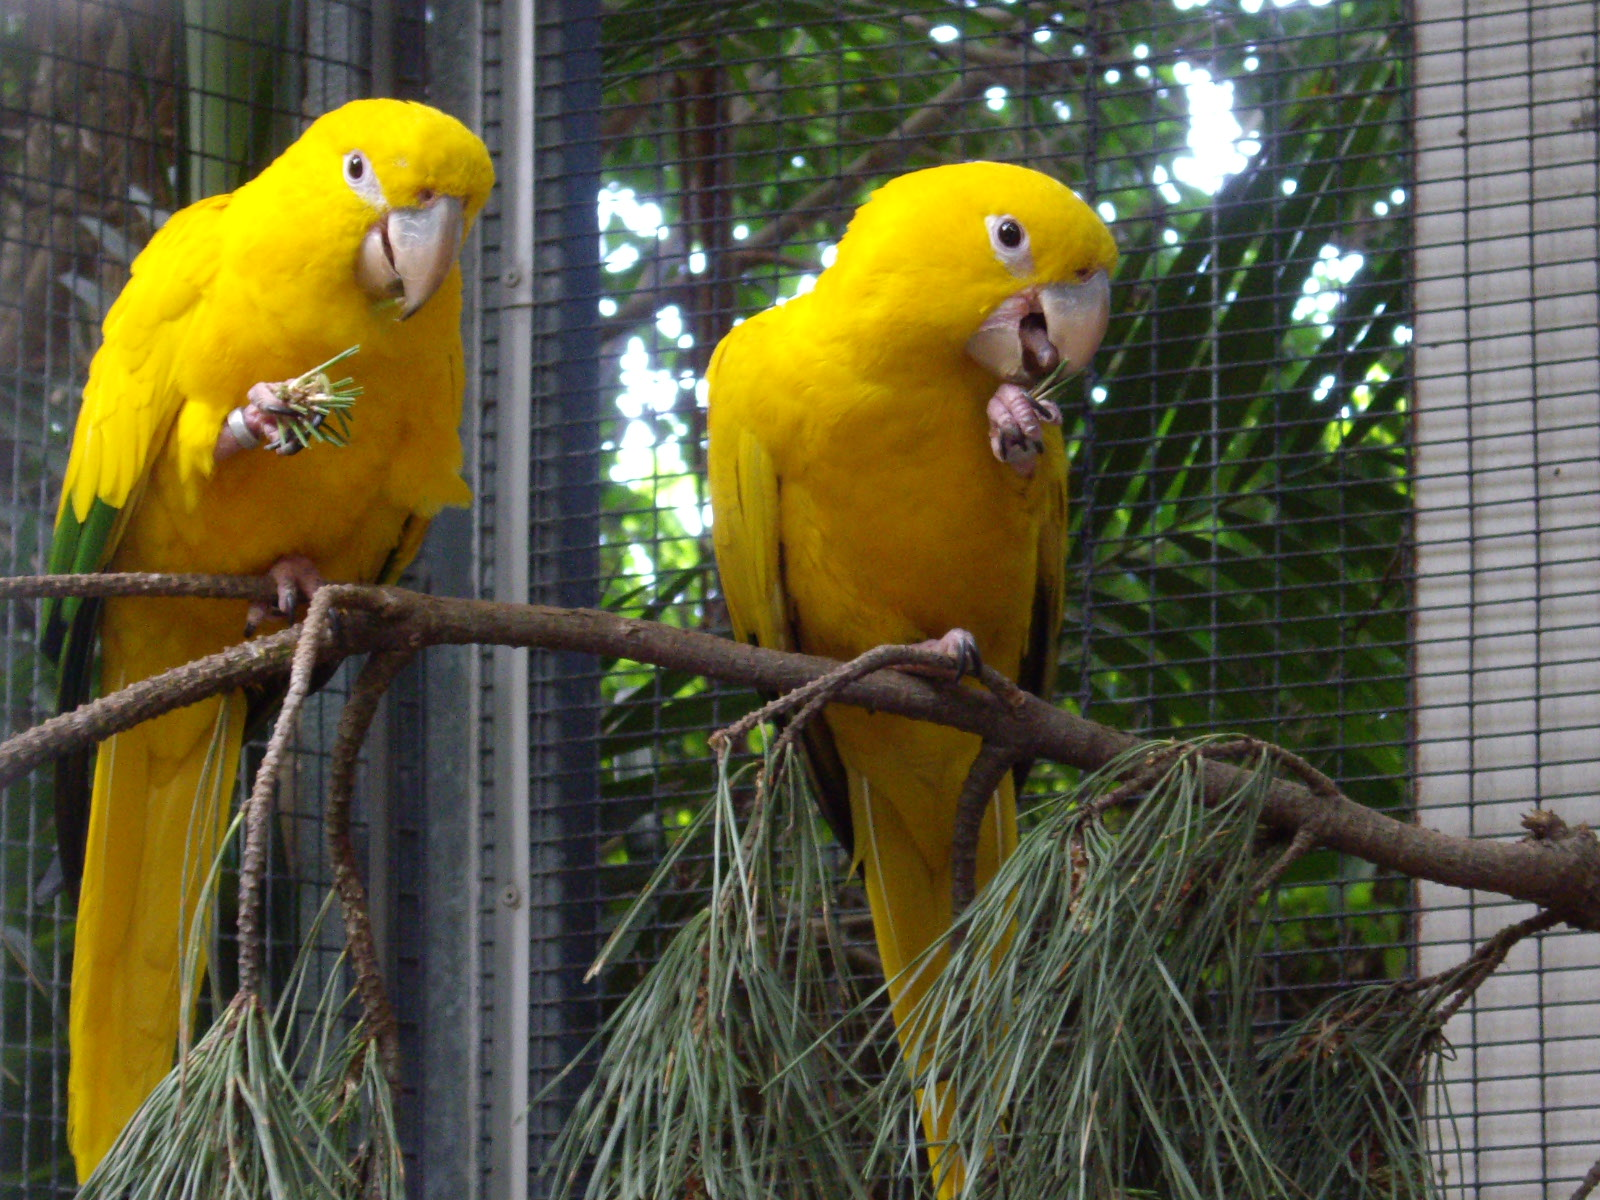 Adult golden conures